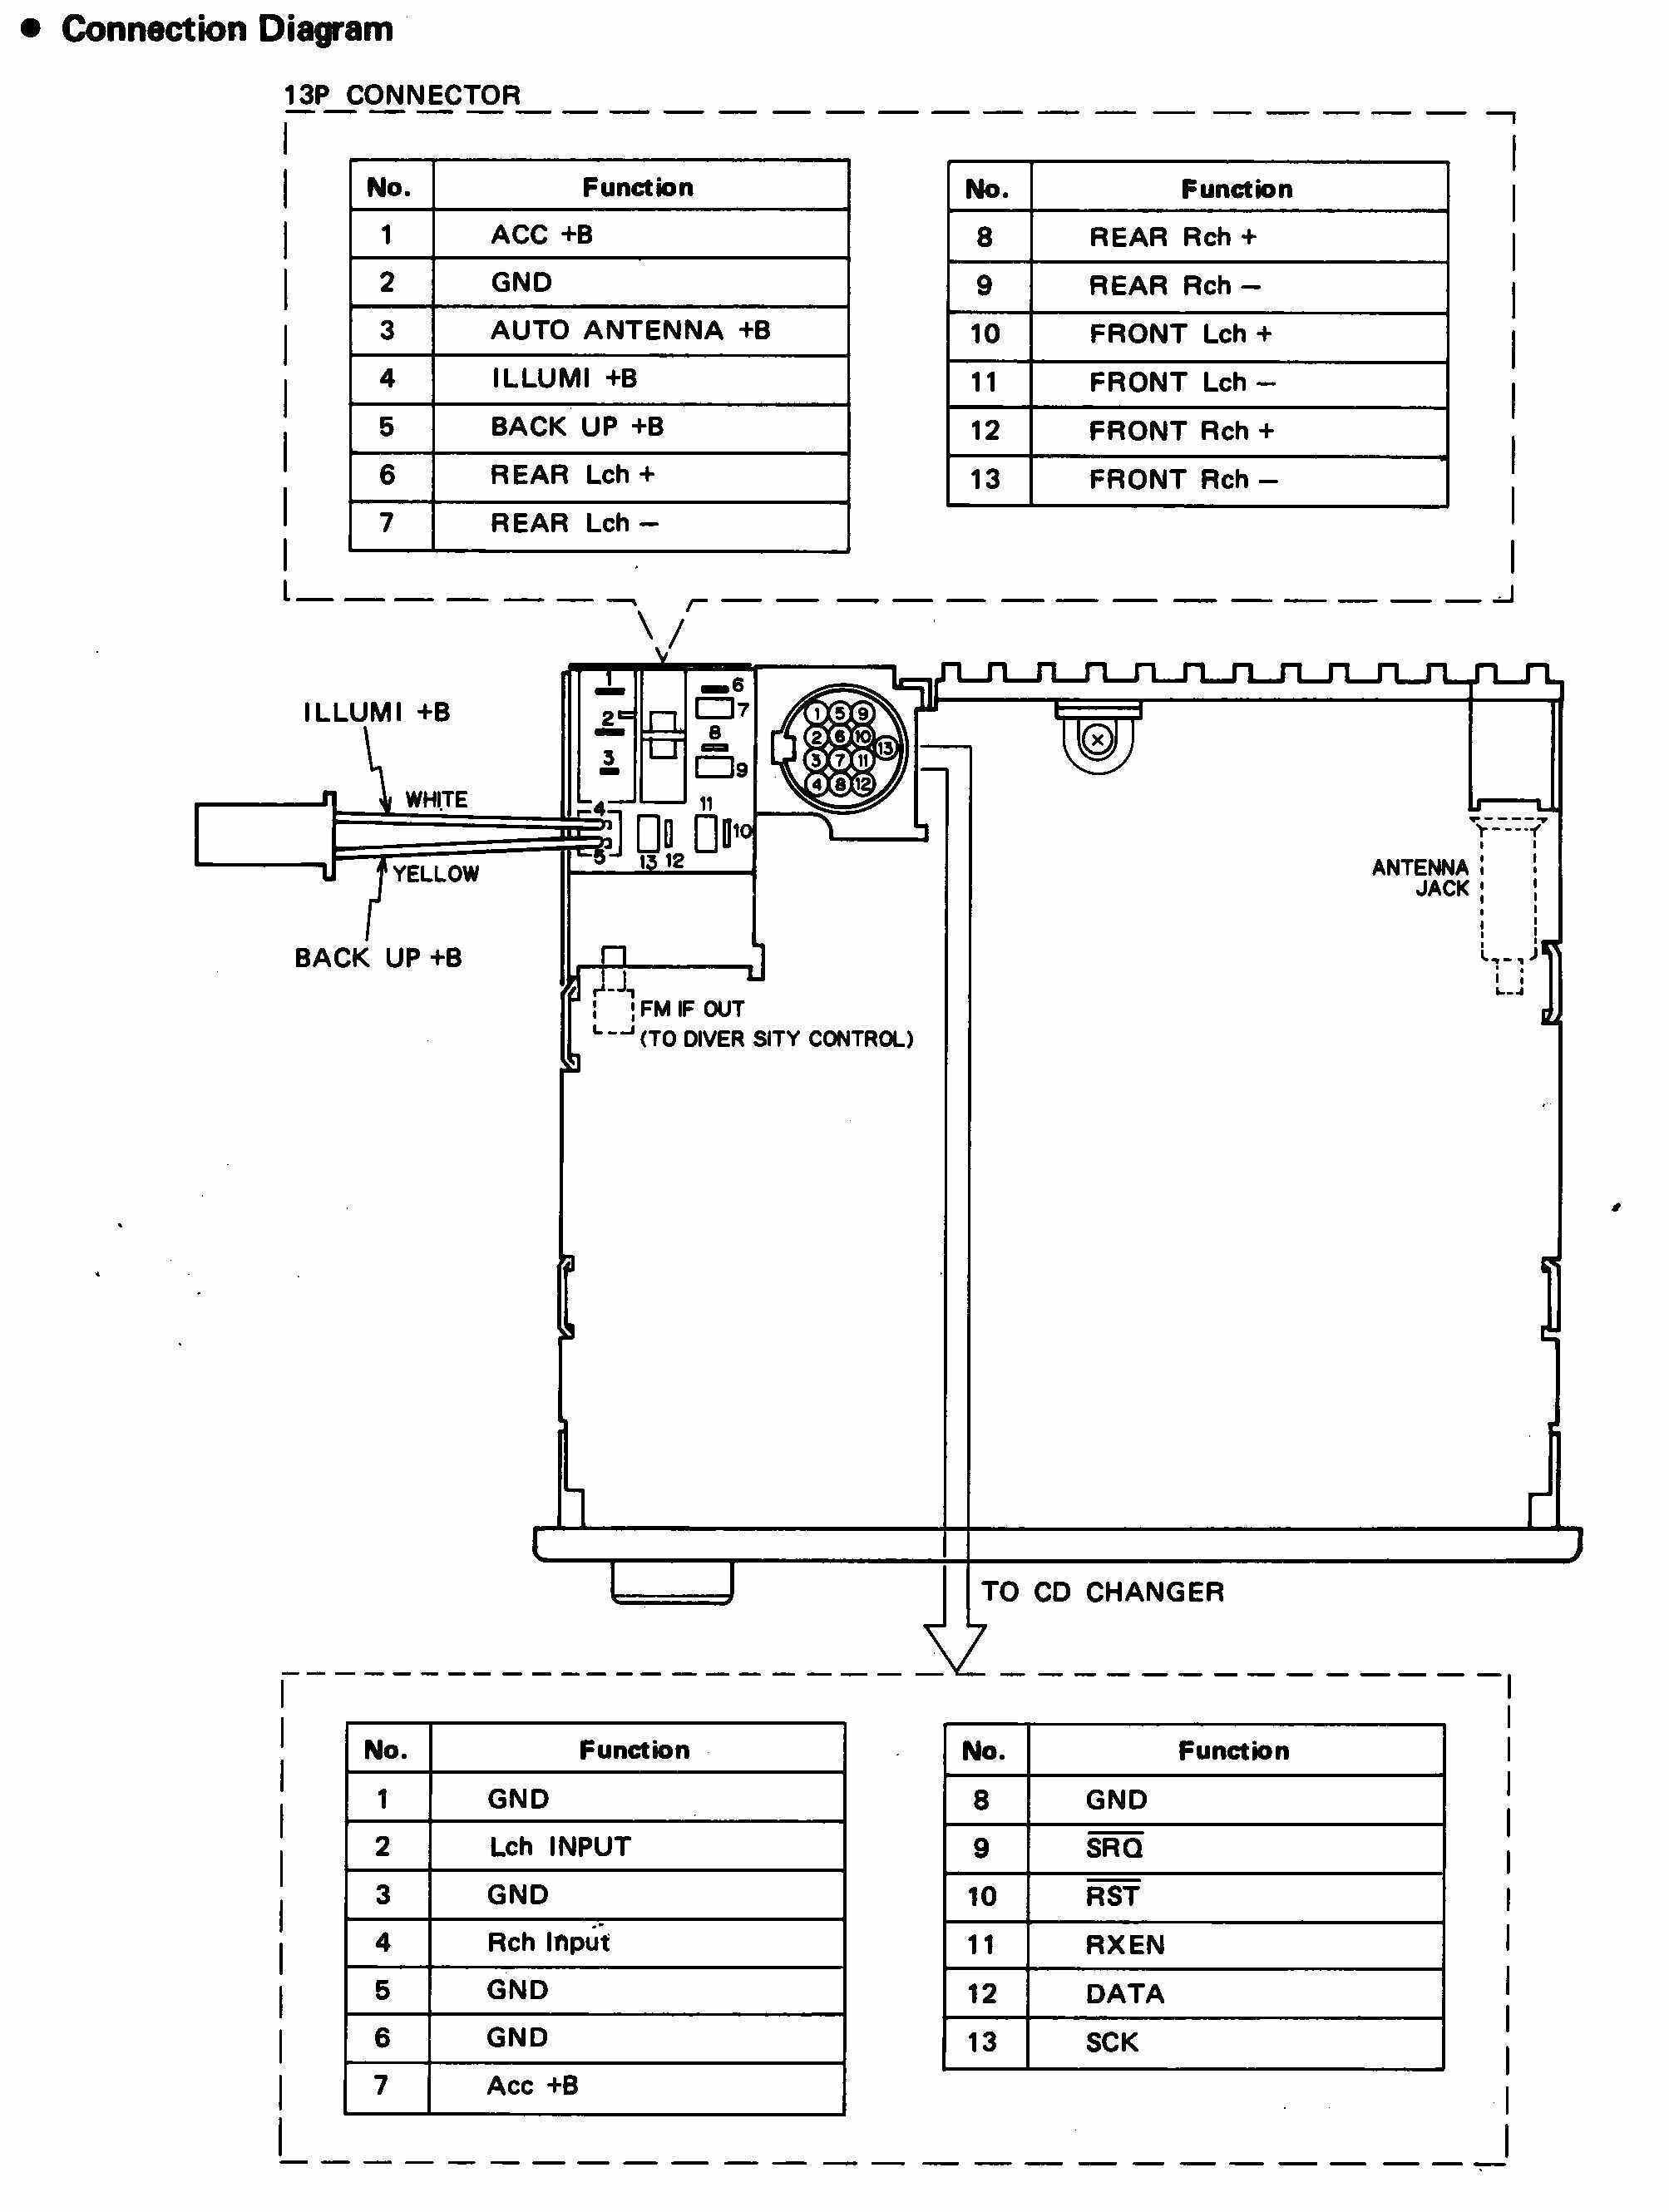 Cool Jensen Radio Wiring Diagram Ideas Jenn Harness Delphi And - Mercedes Benz Radio Wiring Diagram